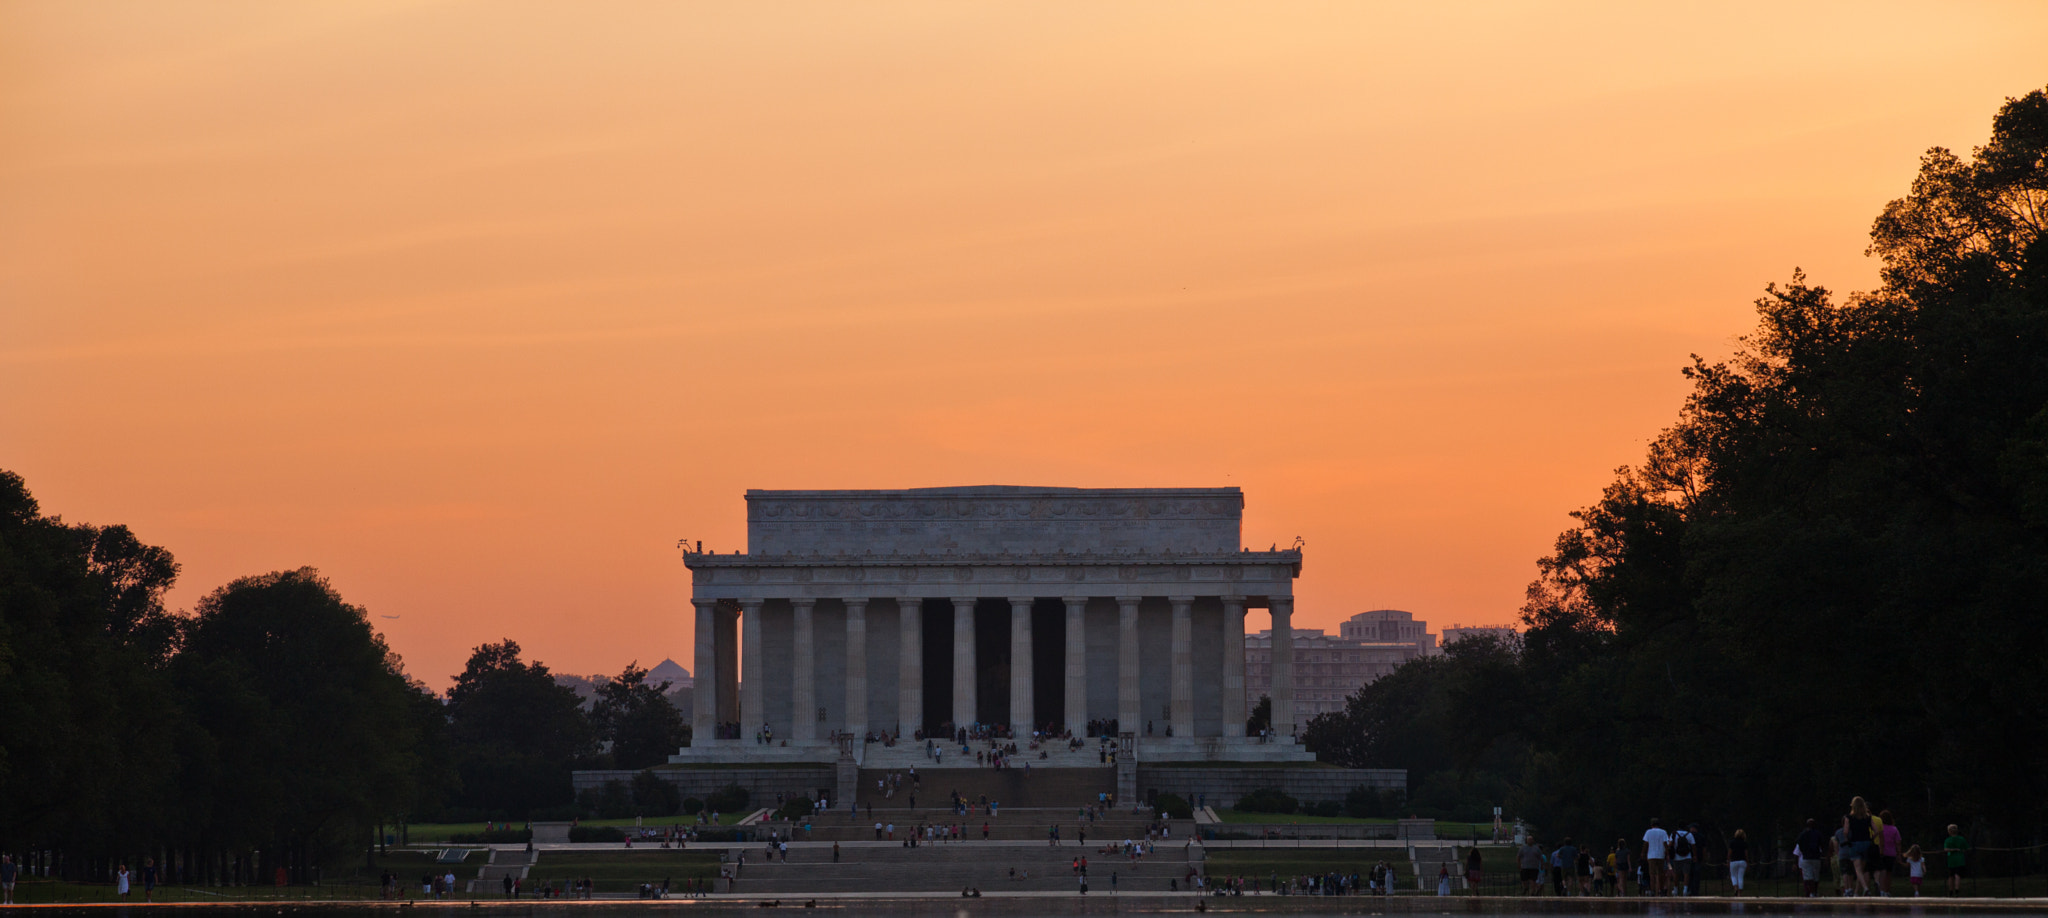 Photograph Abraham Lincoln Memorial by Steve Lee on 500px